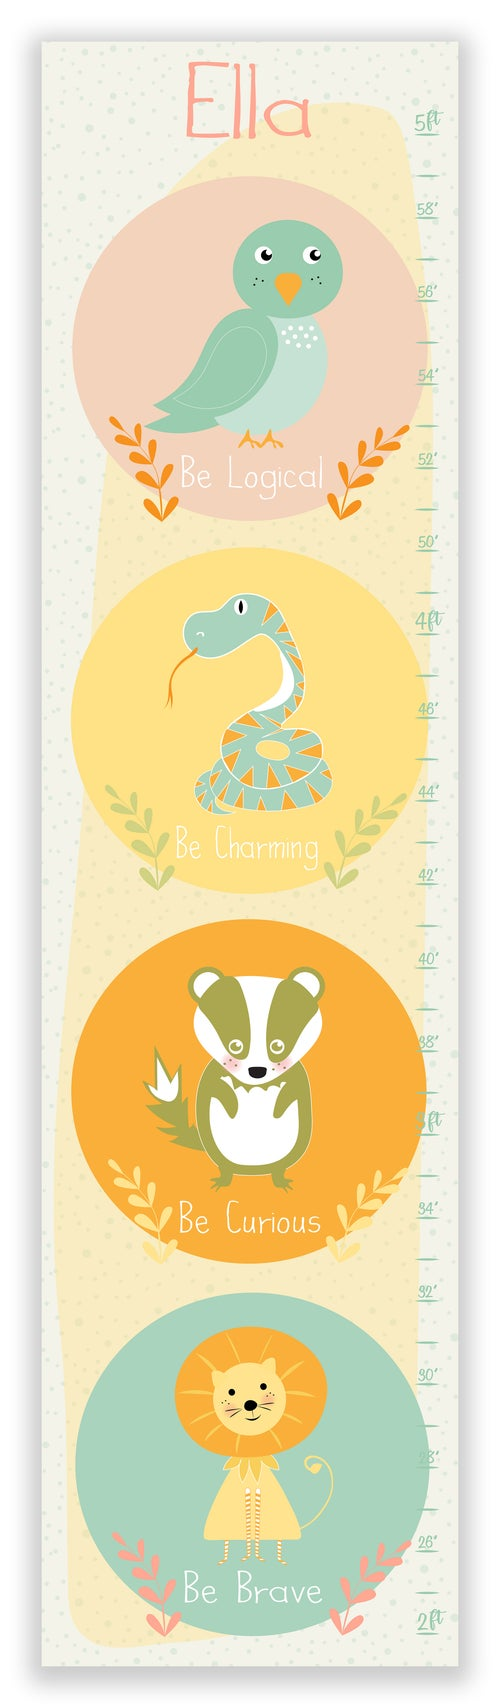 Image of Harry Potter Inspired Animals Girls Personalized Canvas Growth Chart